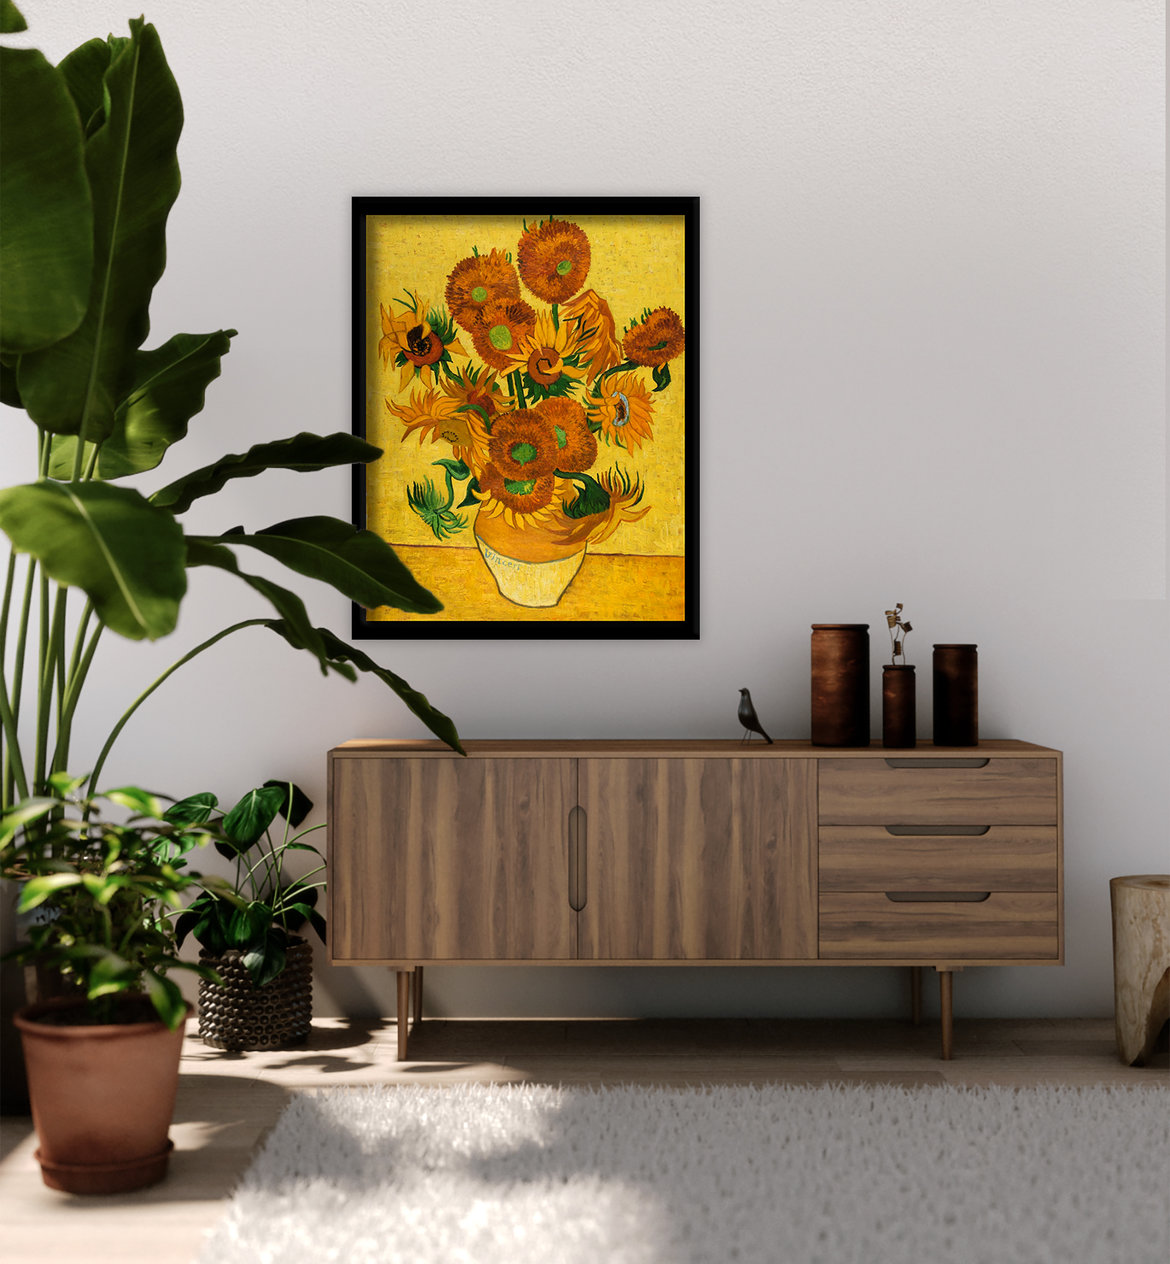 Hand-painted reproduction of Hand-painted reproduction Vase with Fifteen Sunflowers in interior